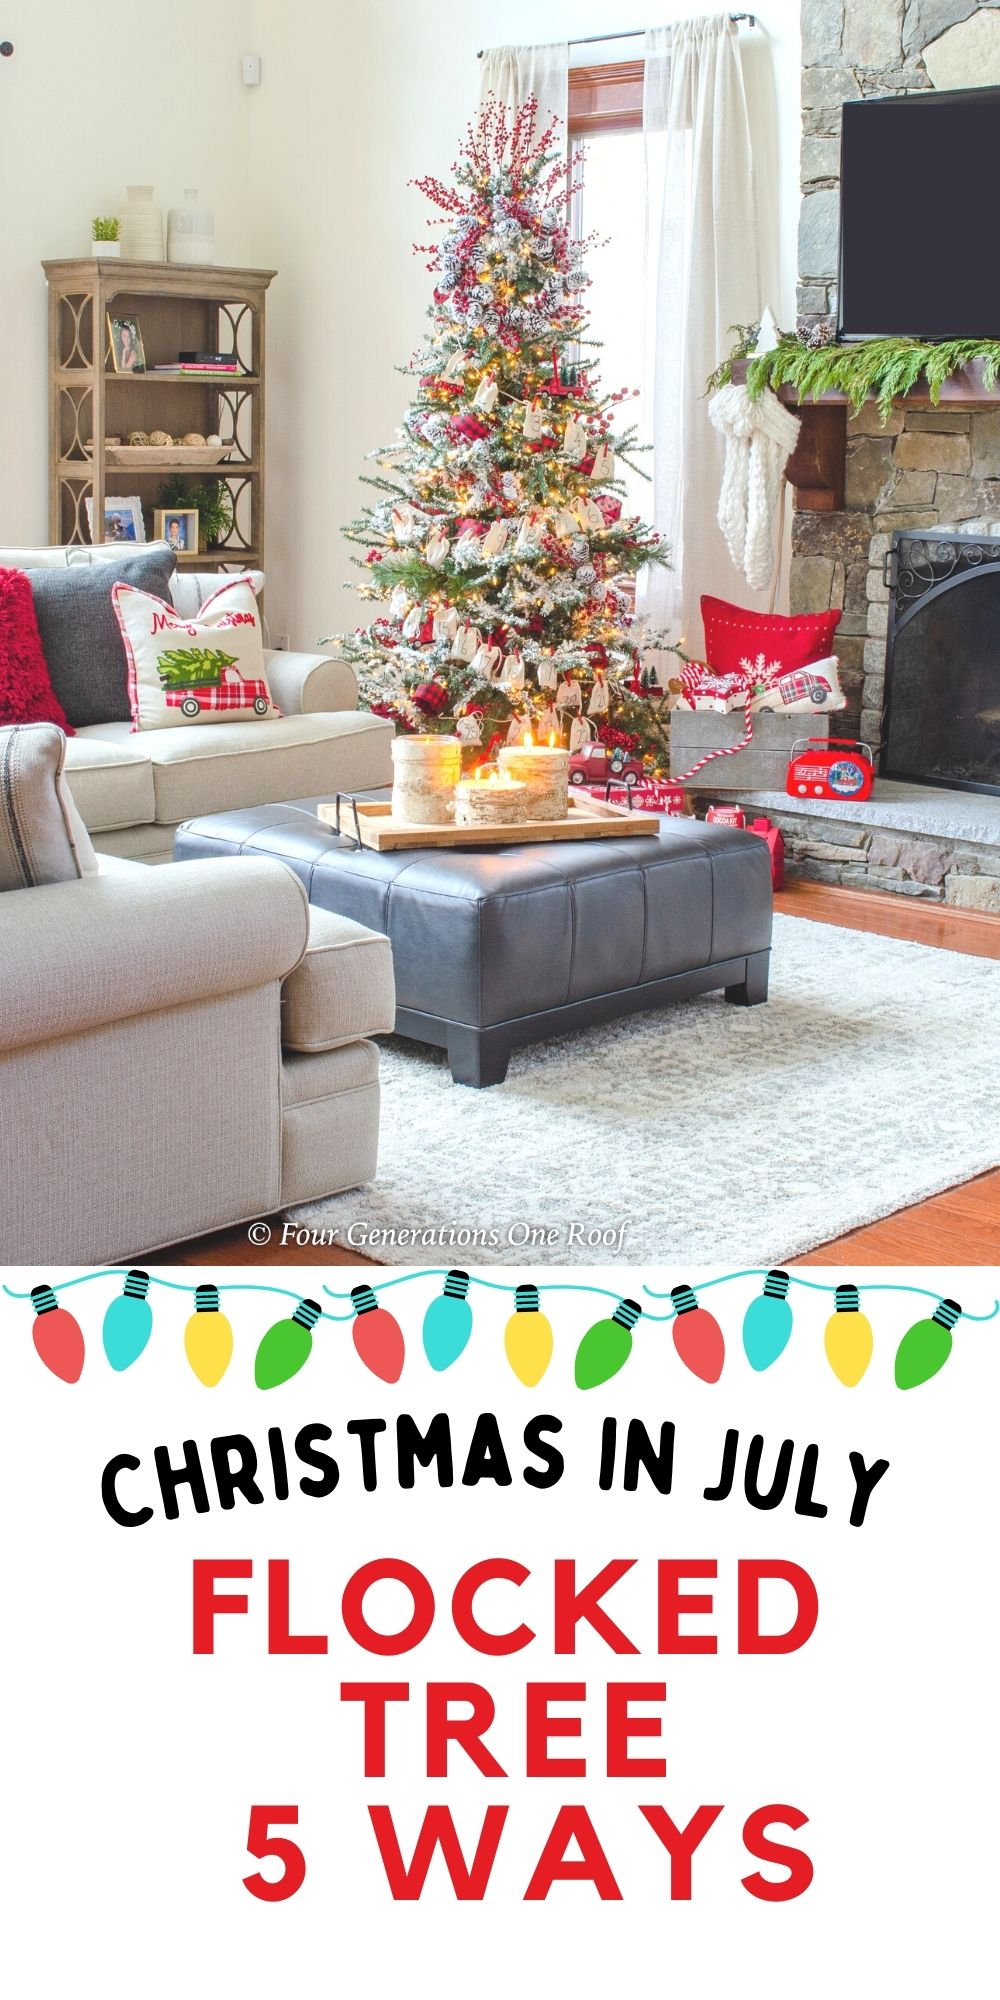 Christmas in July Flocked tree decorated 5 ways - how to decorate a Christmas tree like a professional on a budget